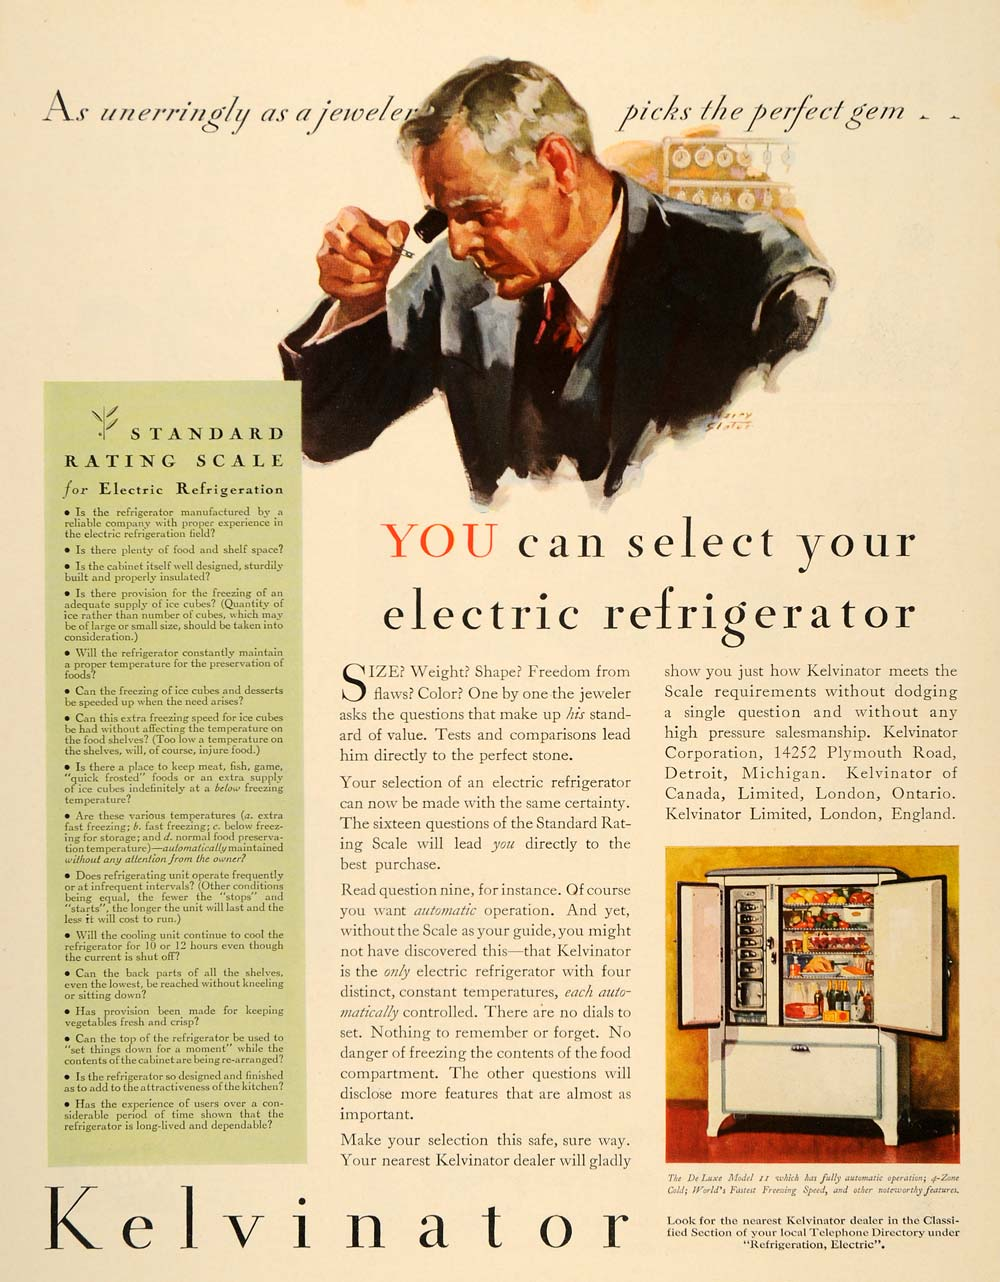 1932 Ad Refrigerator Kelvinator Electric Slater Jewels - ORIGINAL MX4